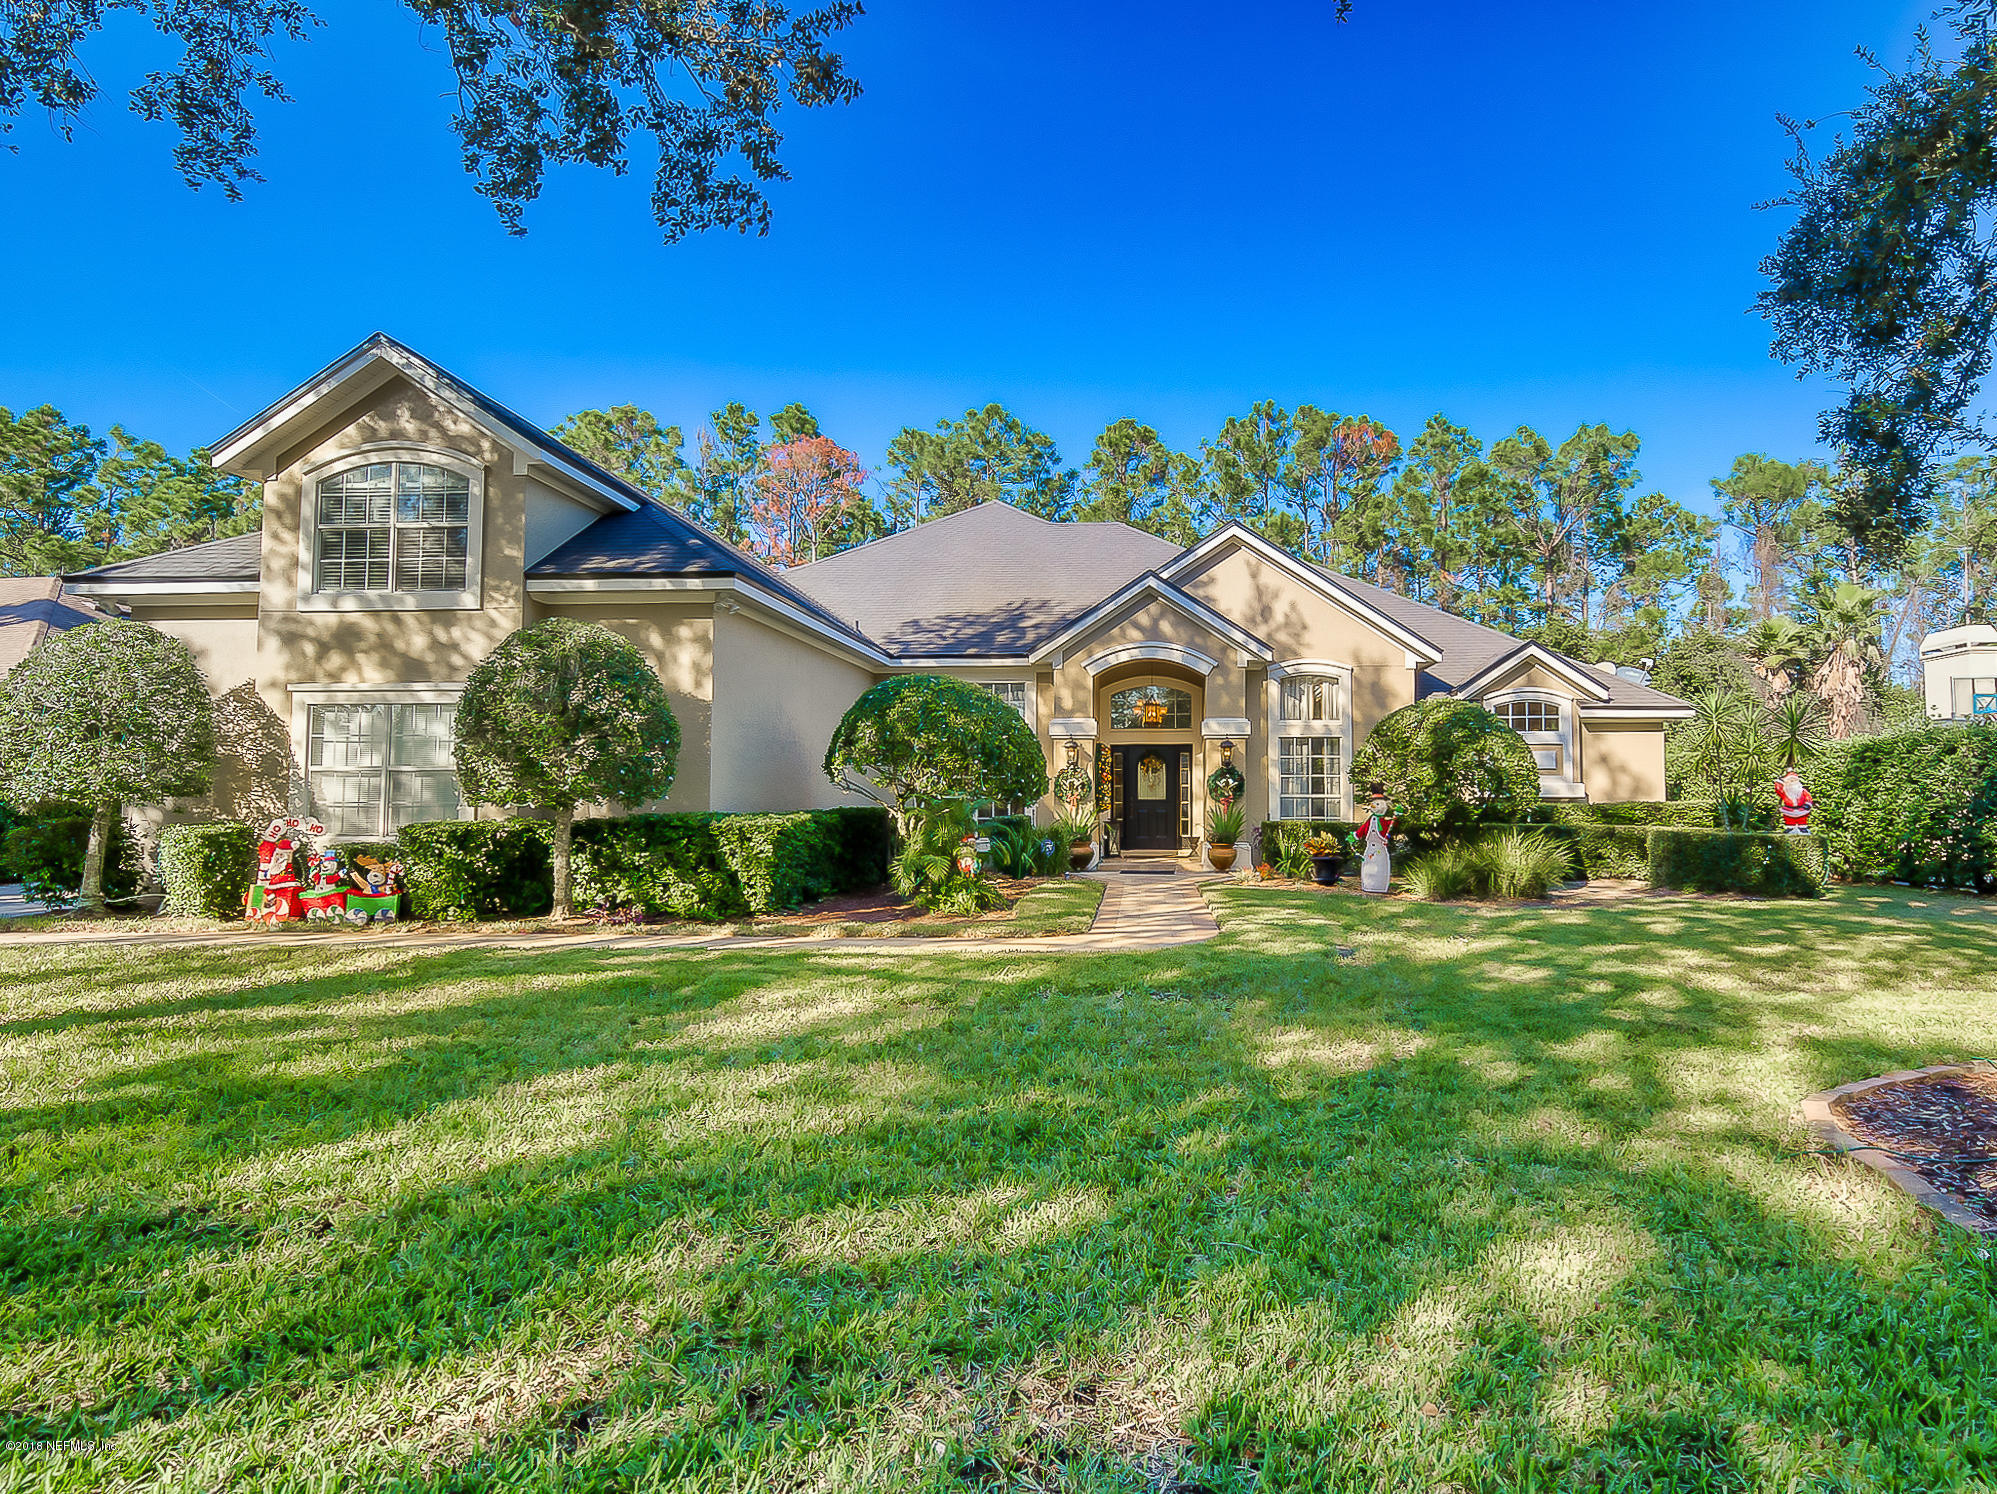 13159 WEXFORD HOLLOW, JACKSONVILLE, FLORIDA 32224, 4 Bedrooms Bedrooms, ,3 BathroomsBathrooms,Residential - single family,For sale,WEXFORD HOLLOW,970890